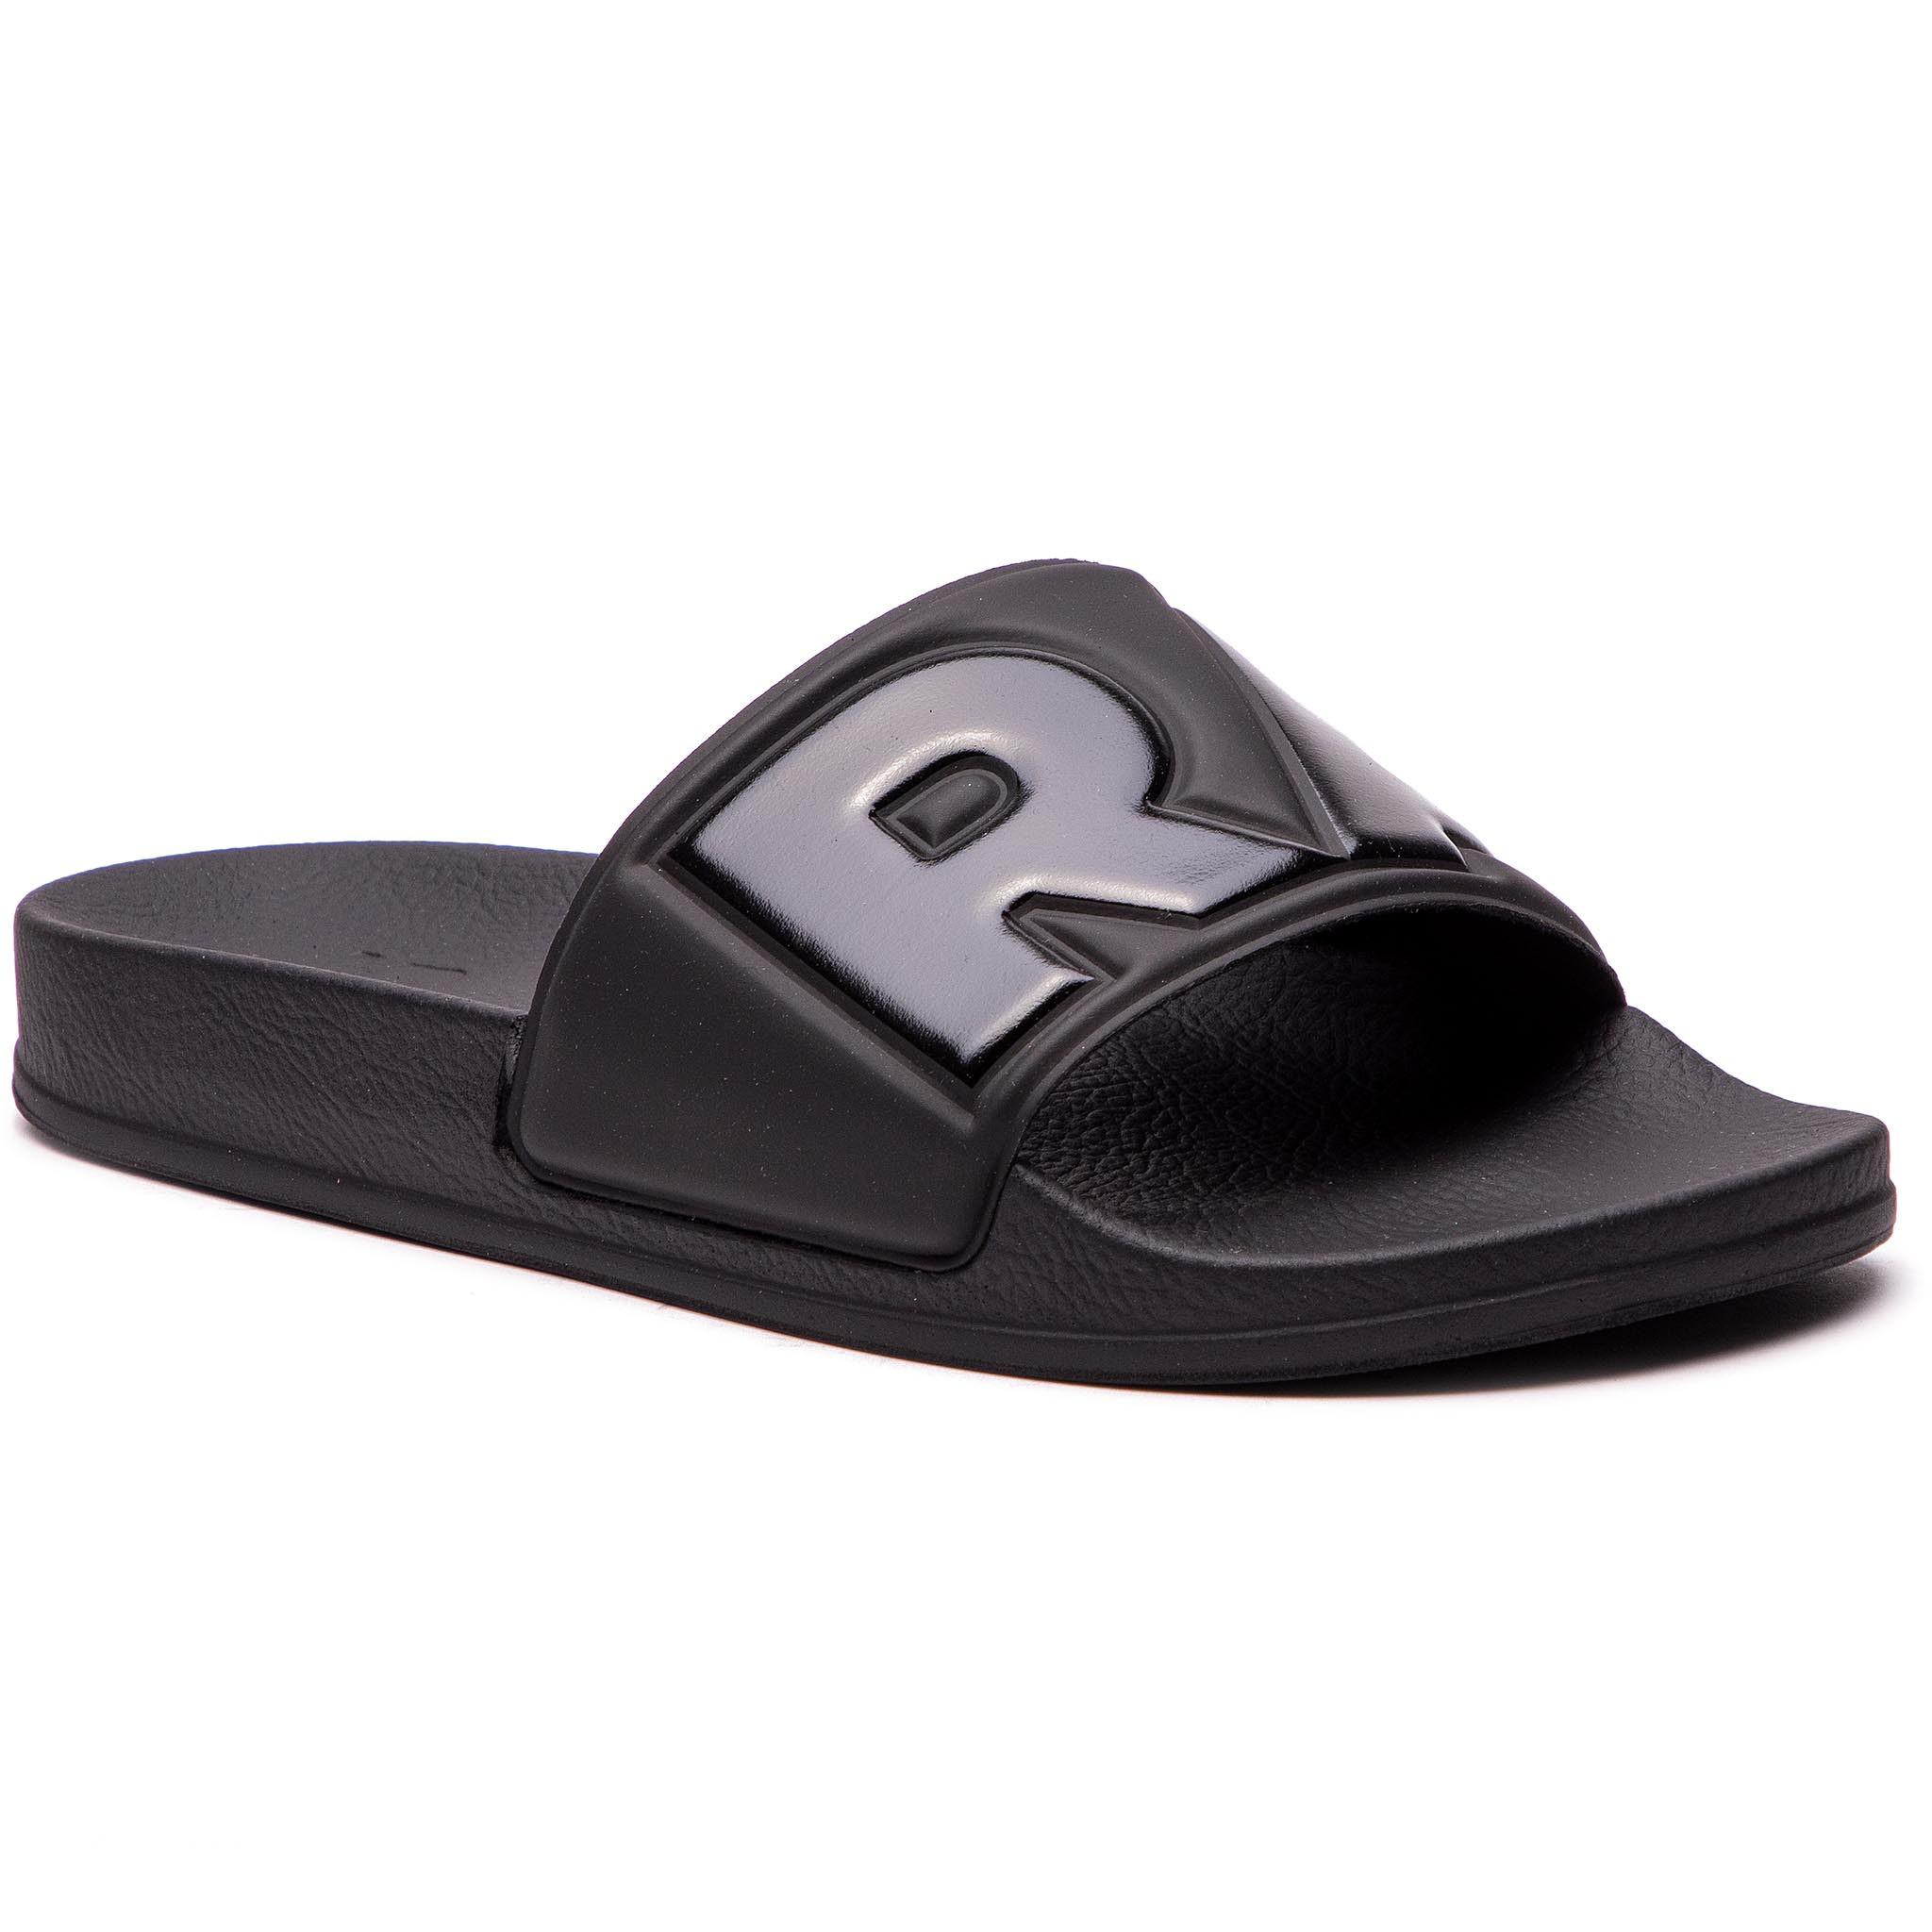 Klapki G-STAR RAW - Cart Slide II D08754-3593-990 Black